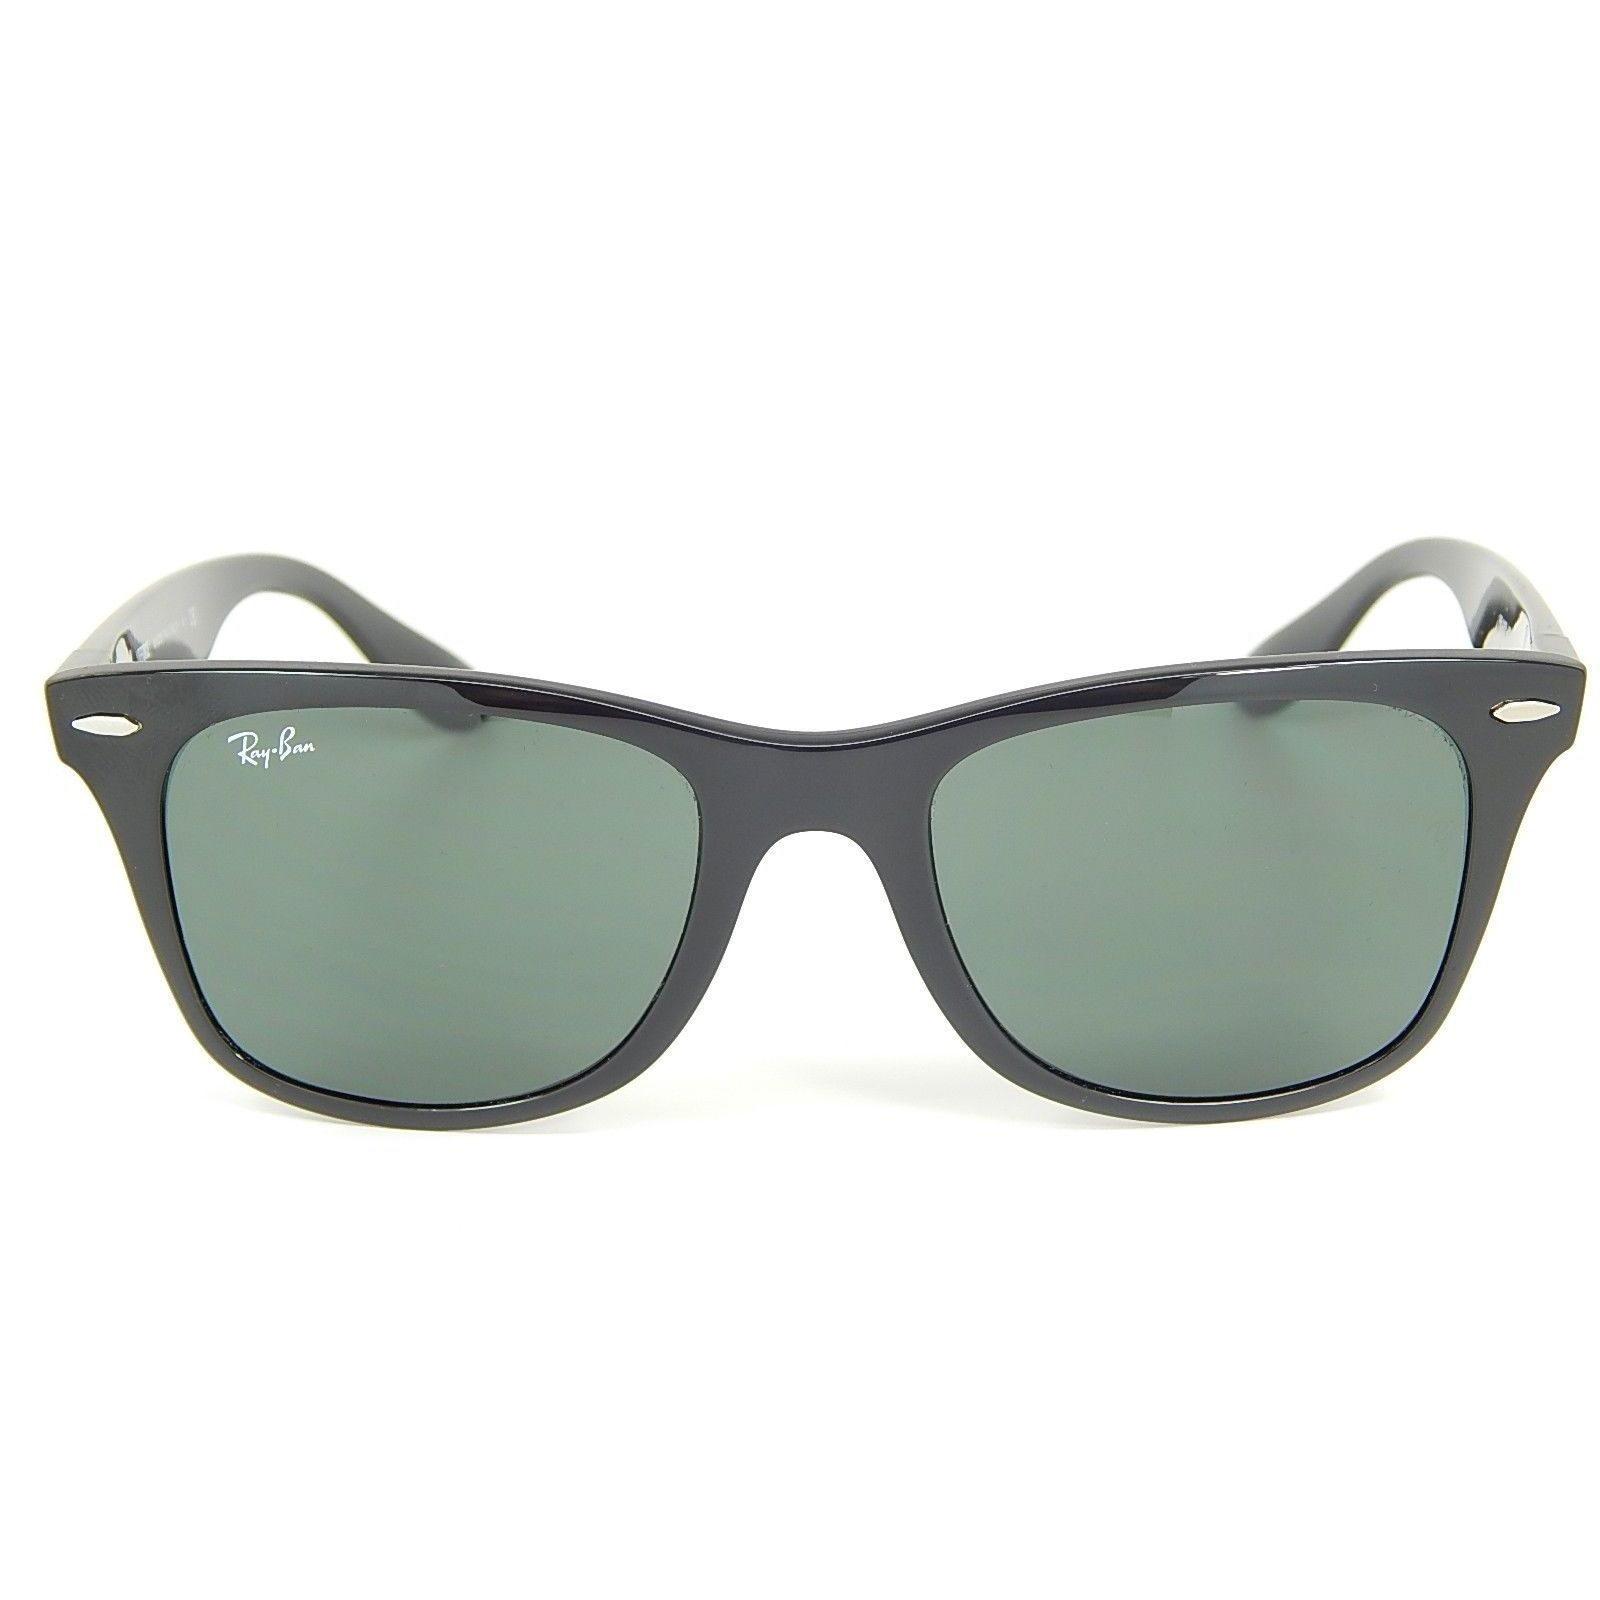 a562e26209 Shop Ray-Ban Unisex RB4195 Liteforce 601 71 Black Wayfarer Plastic  Sunglasses - Free Shipping Today - Overstock - 9632856